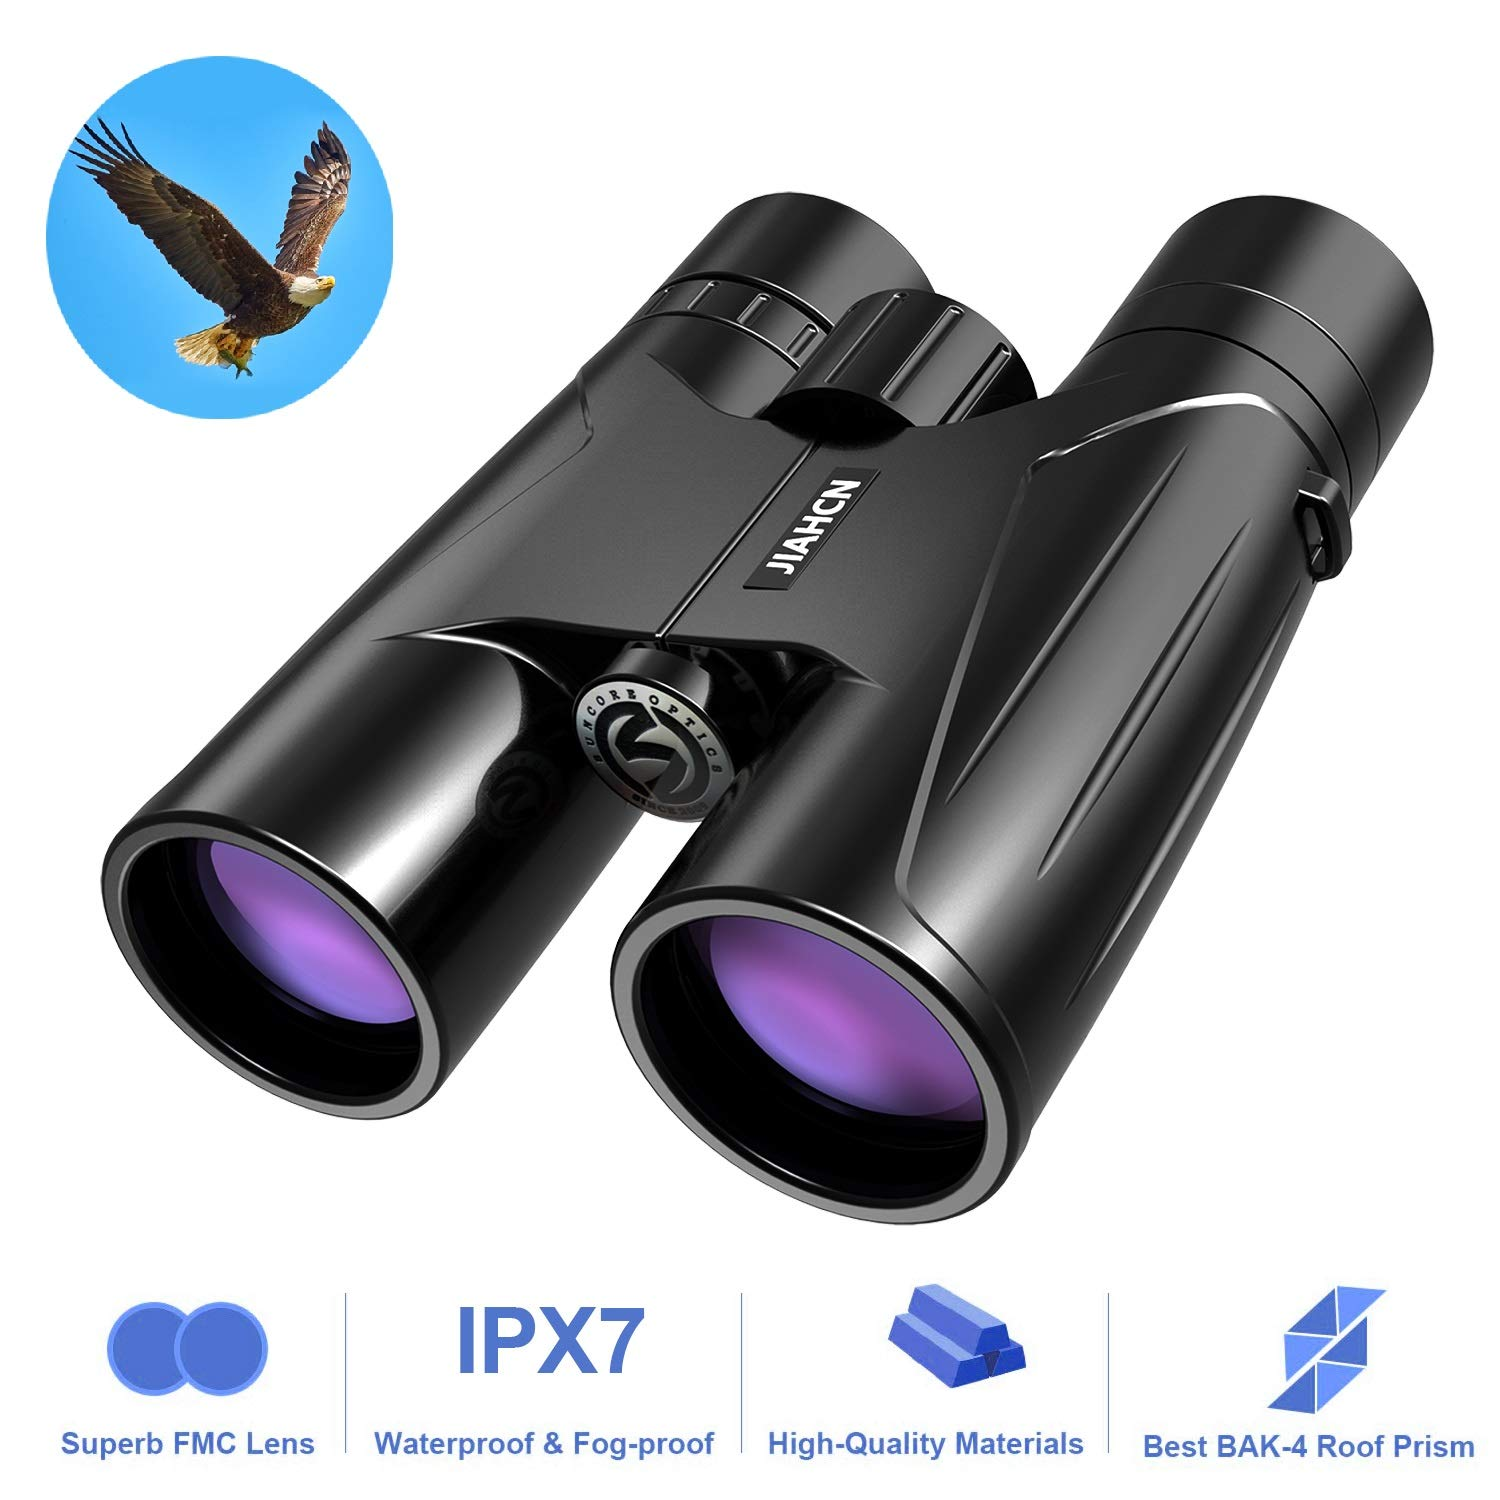 JIAHCN Binoculars for Adults - 10x42 HD Professional Waterproof Binoculars for Bird Watching Travel Stargazing Hunting Concerts Sports with Low Light Night Vision (1.1 pounds) by JIAHCN